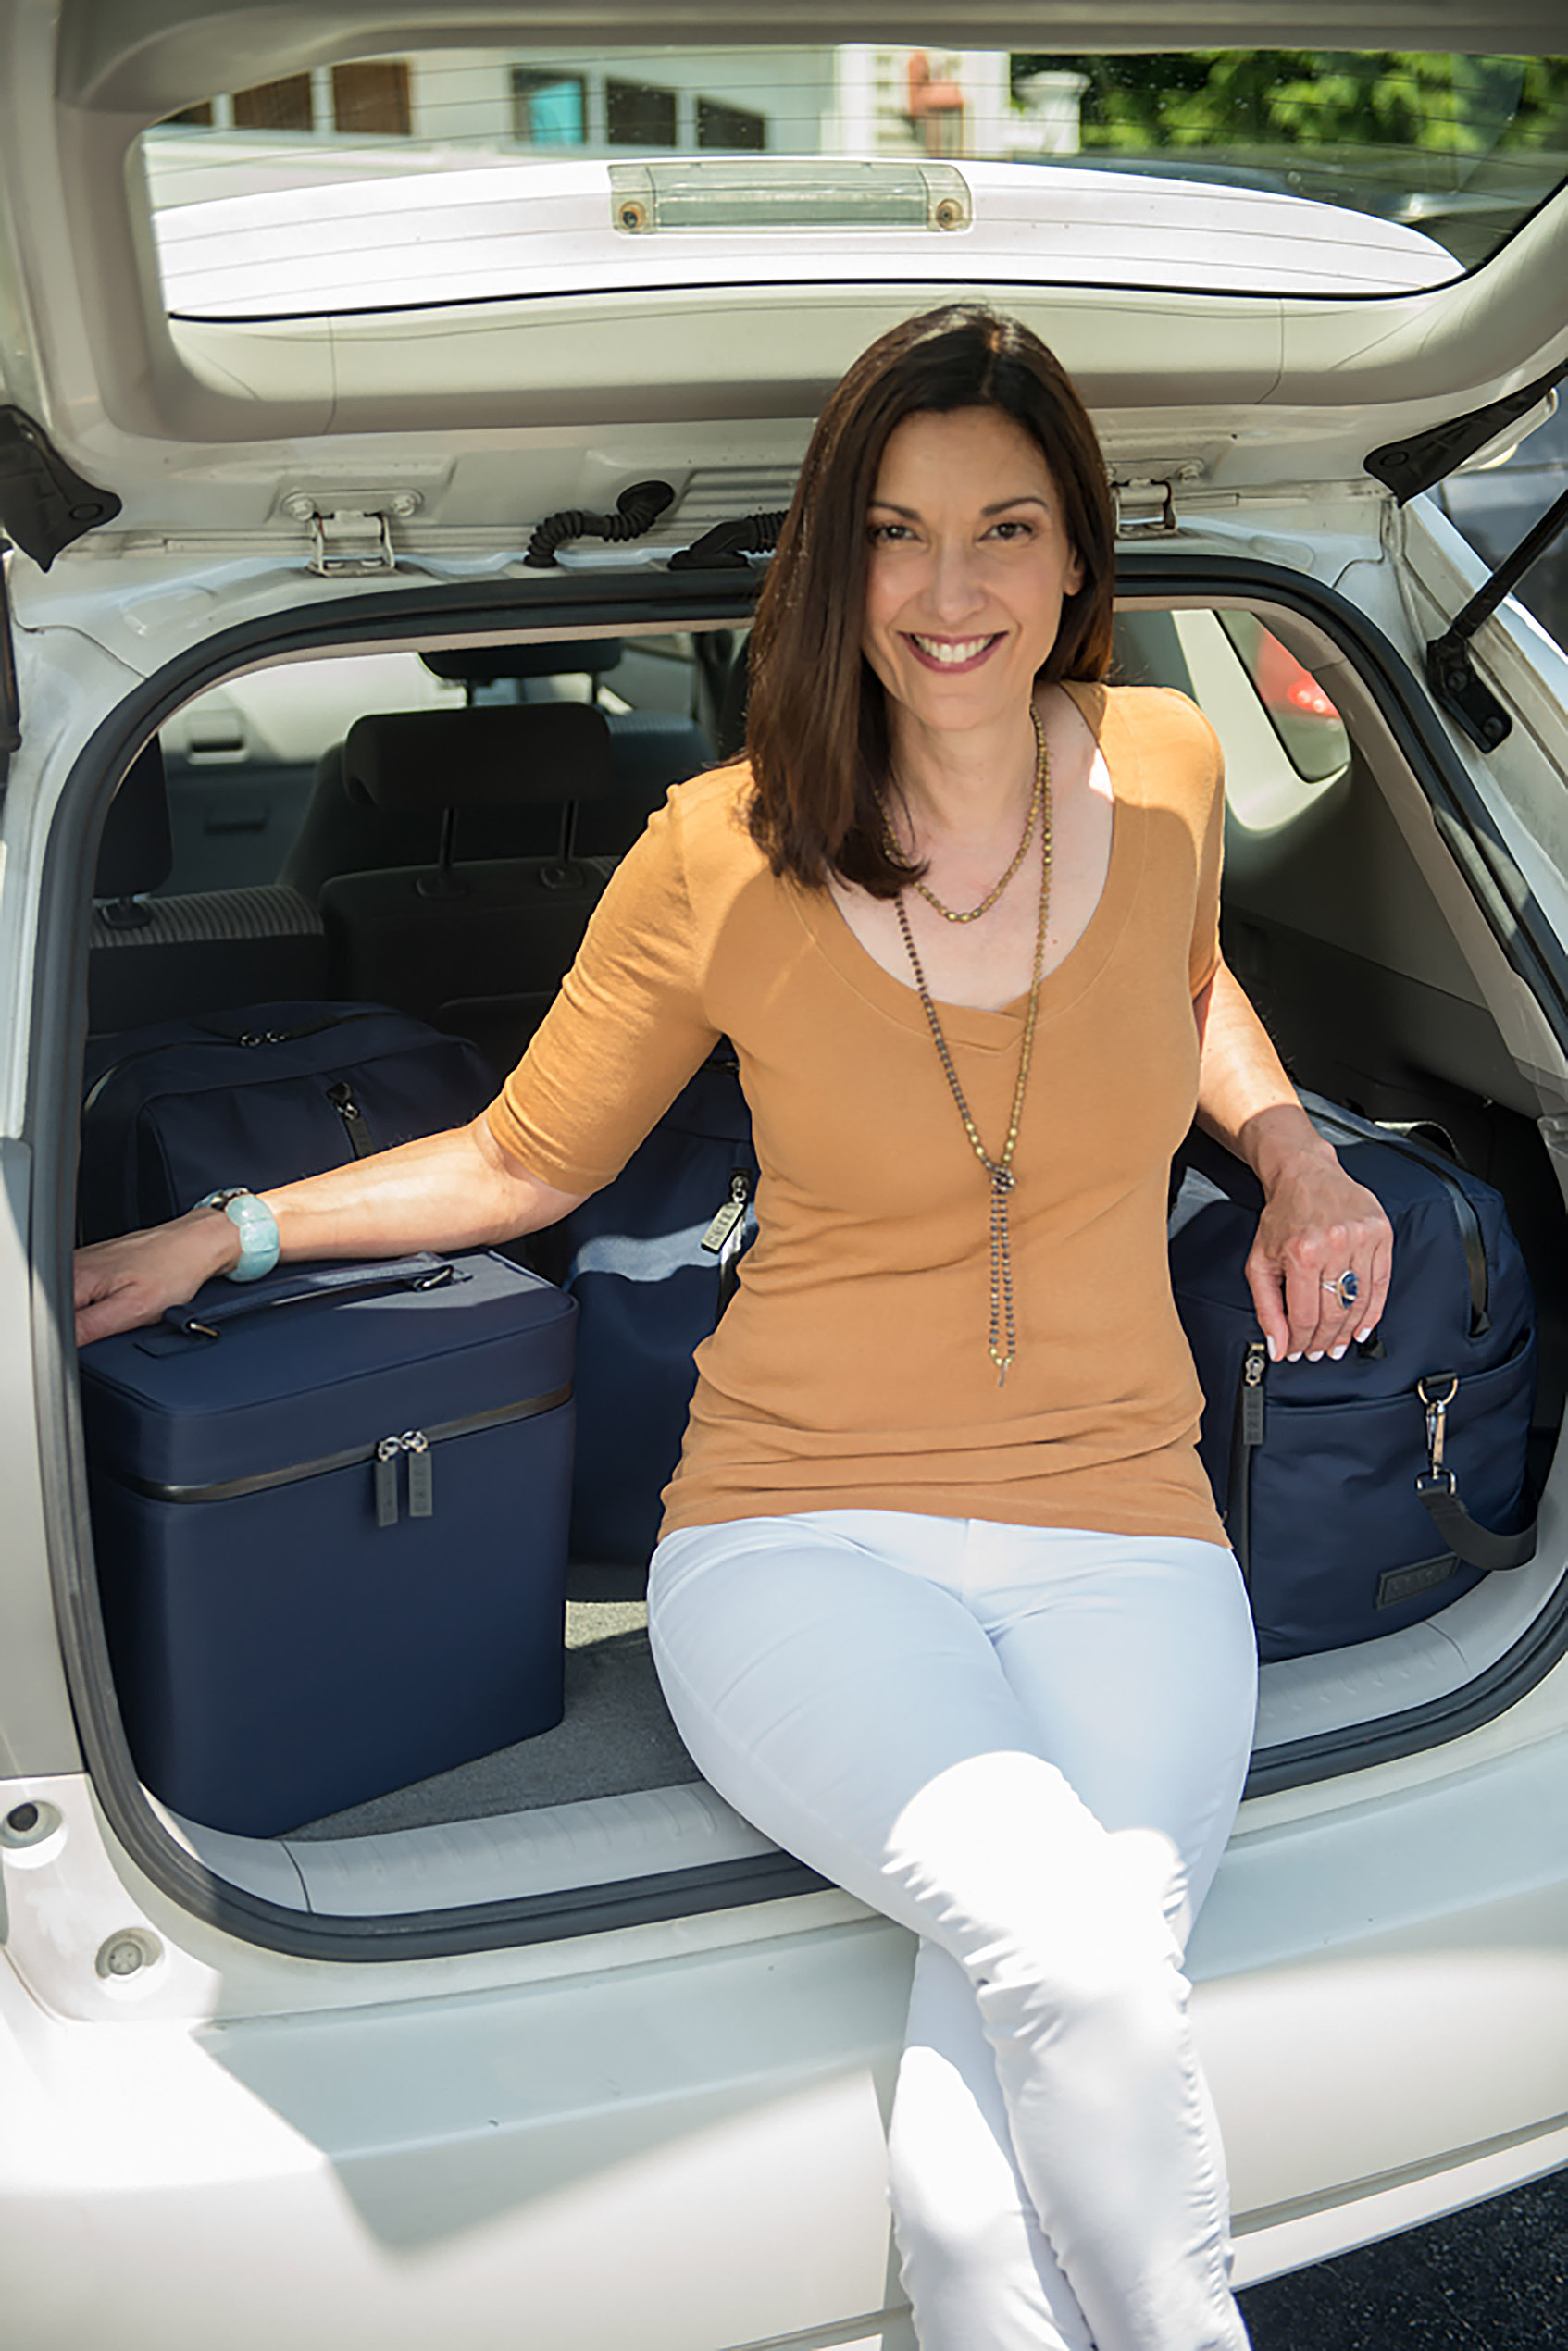 Tracey Cugno is the owner of Rhode Island-based company Leigh ShoeCase, which uses antimicrobial technology in its travel products and face masks.